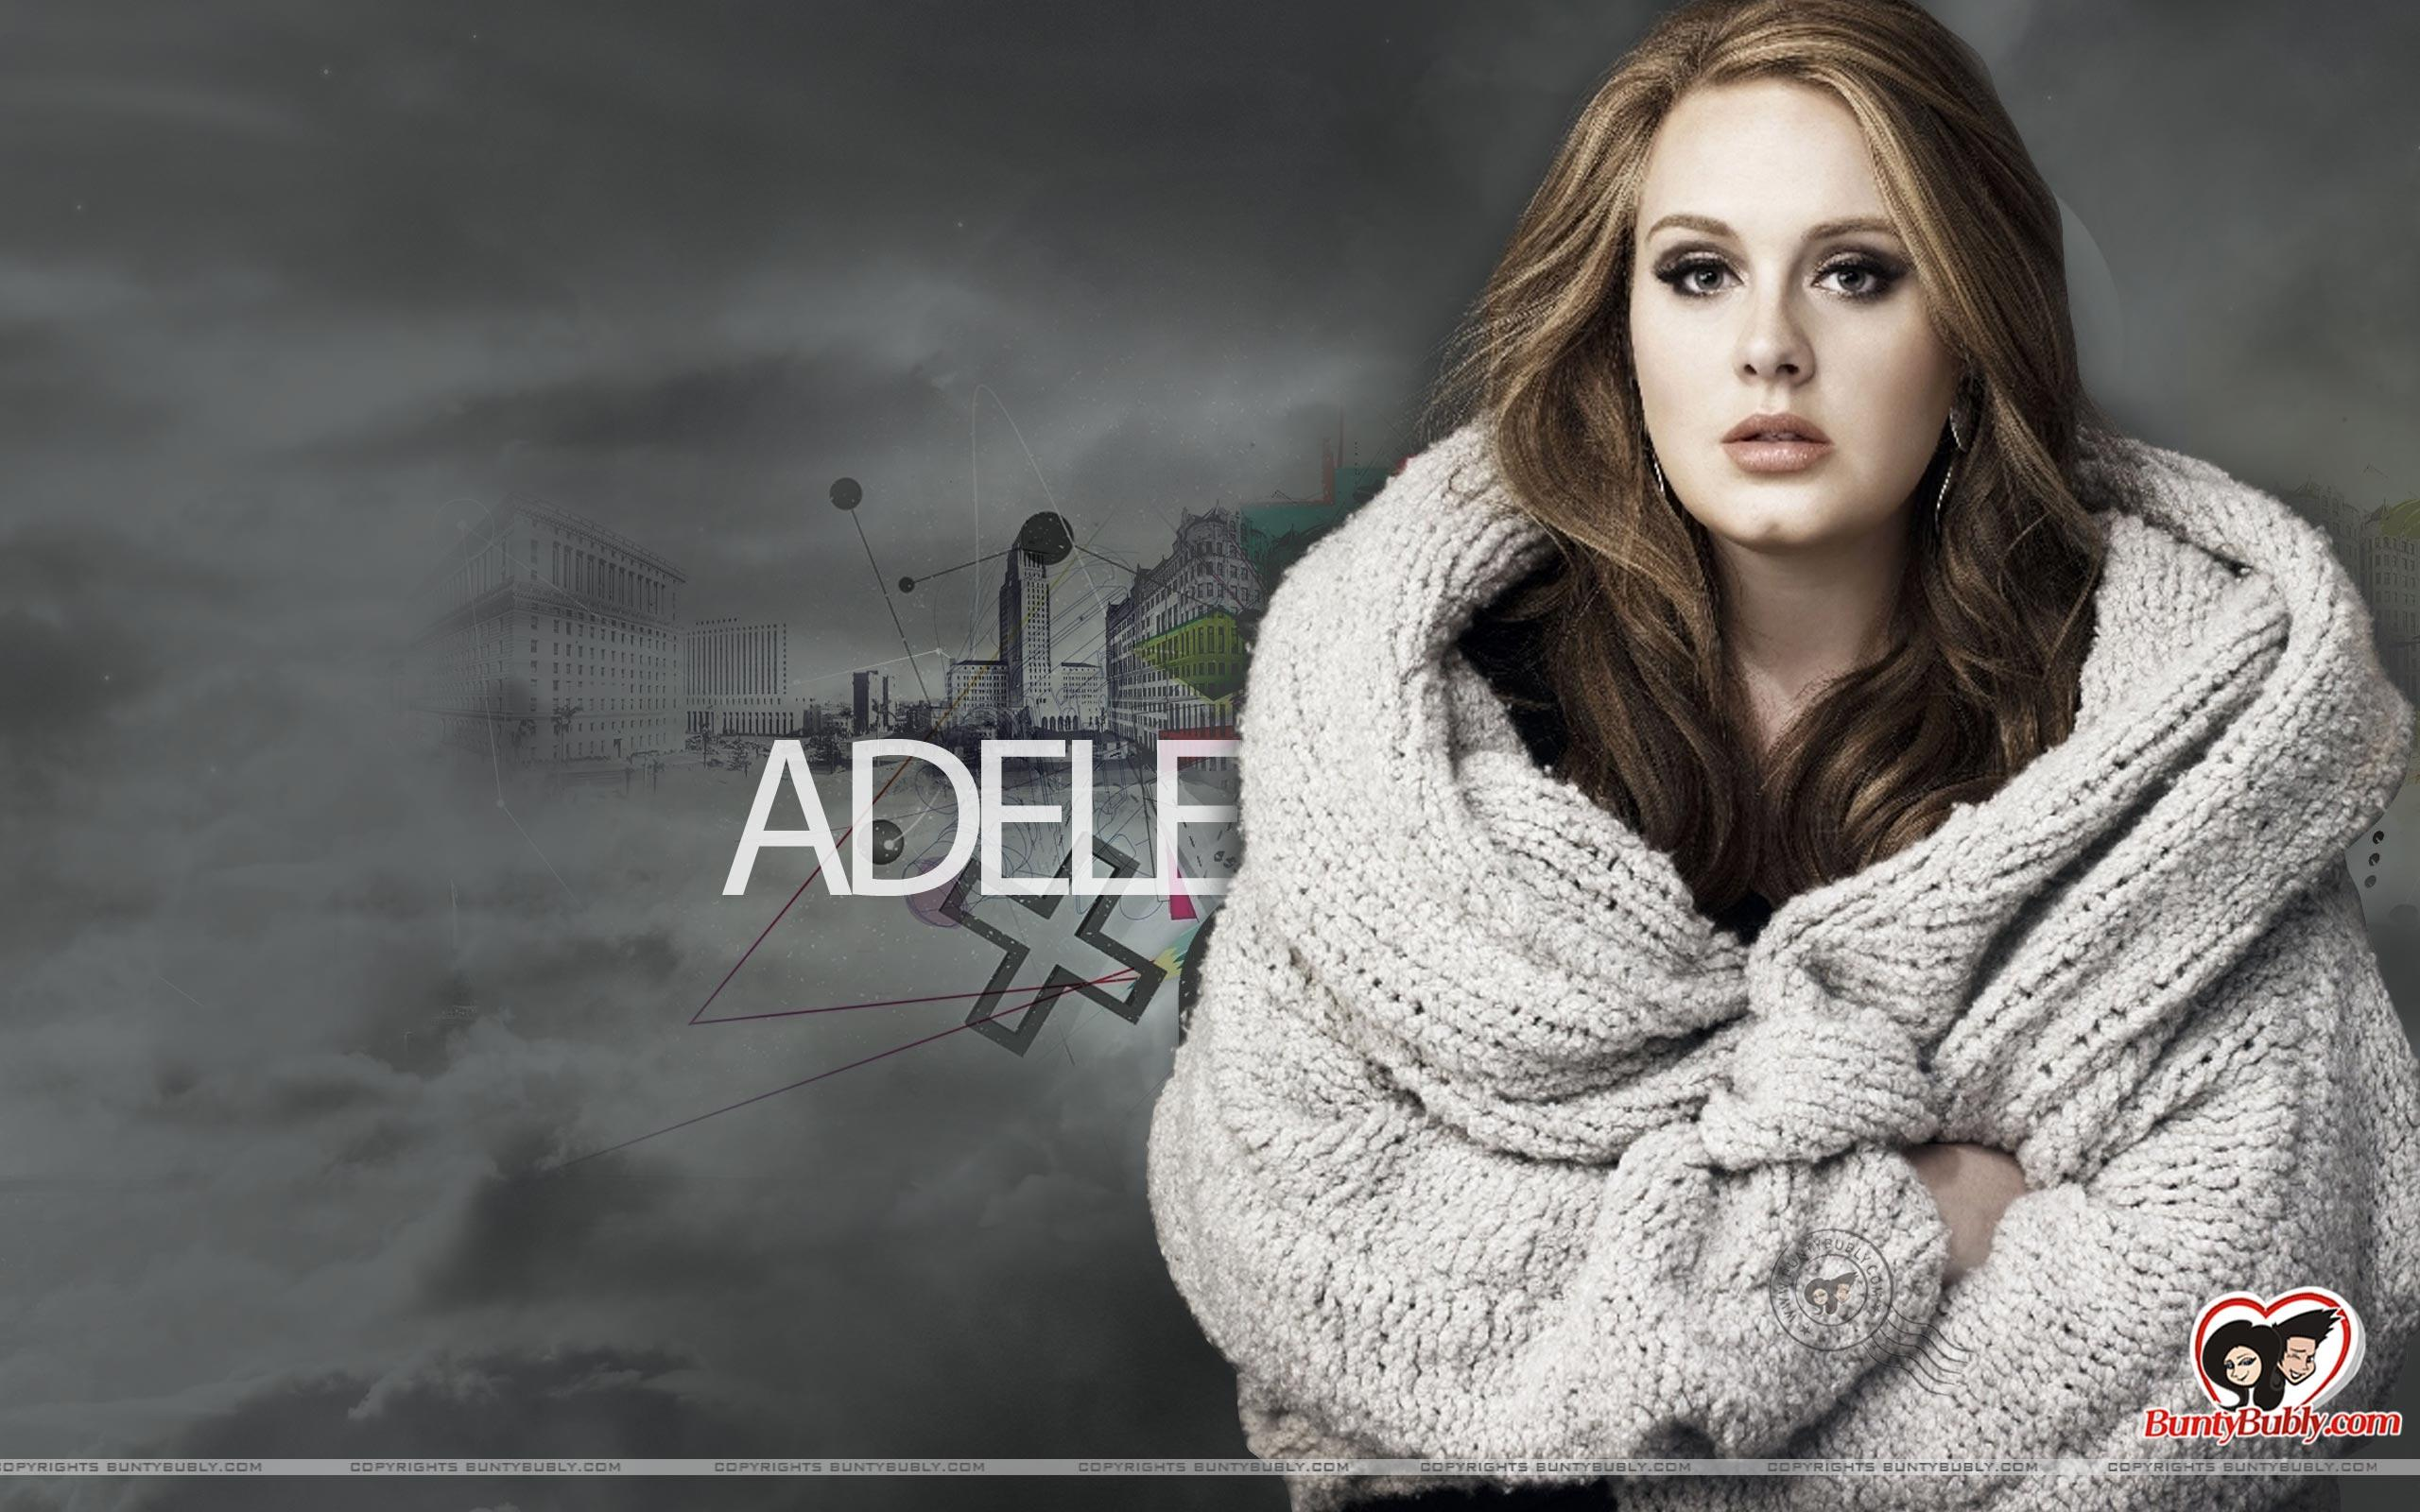 Cute Adele Wallpaper HD